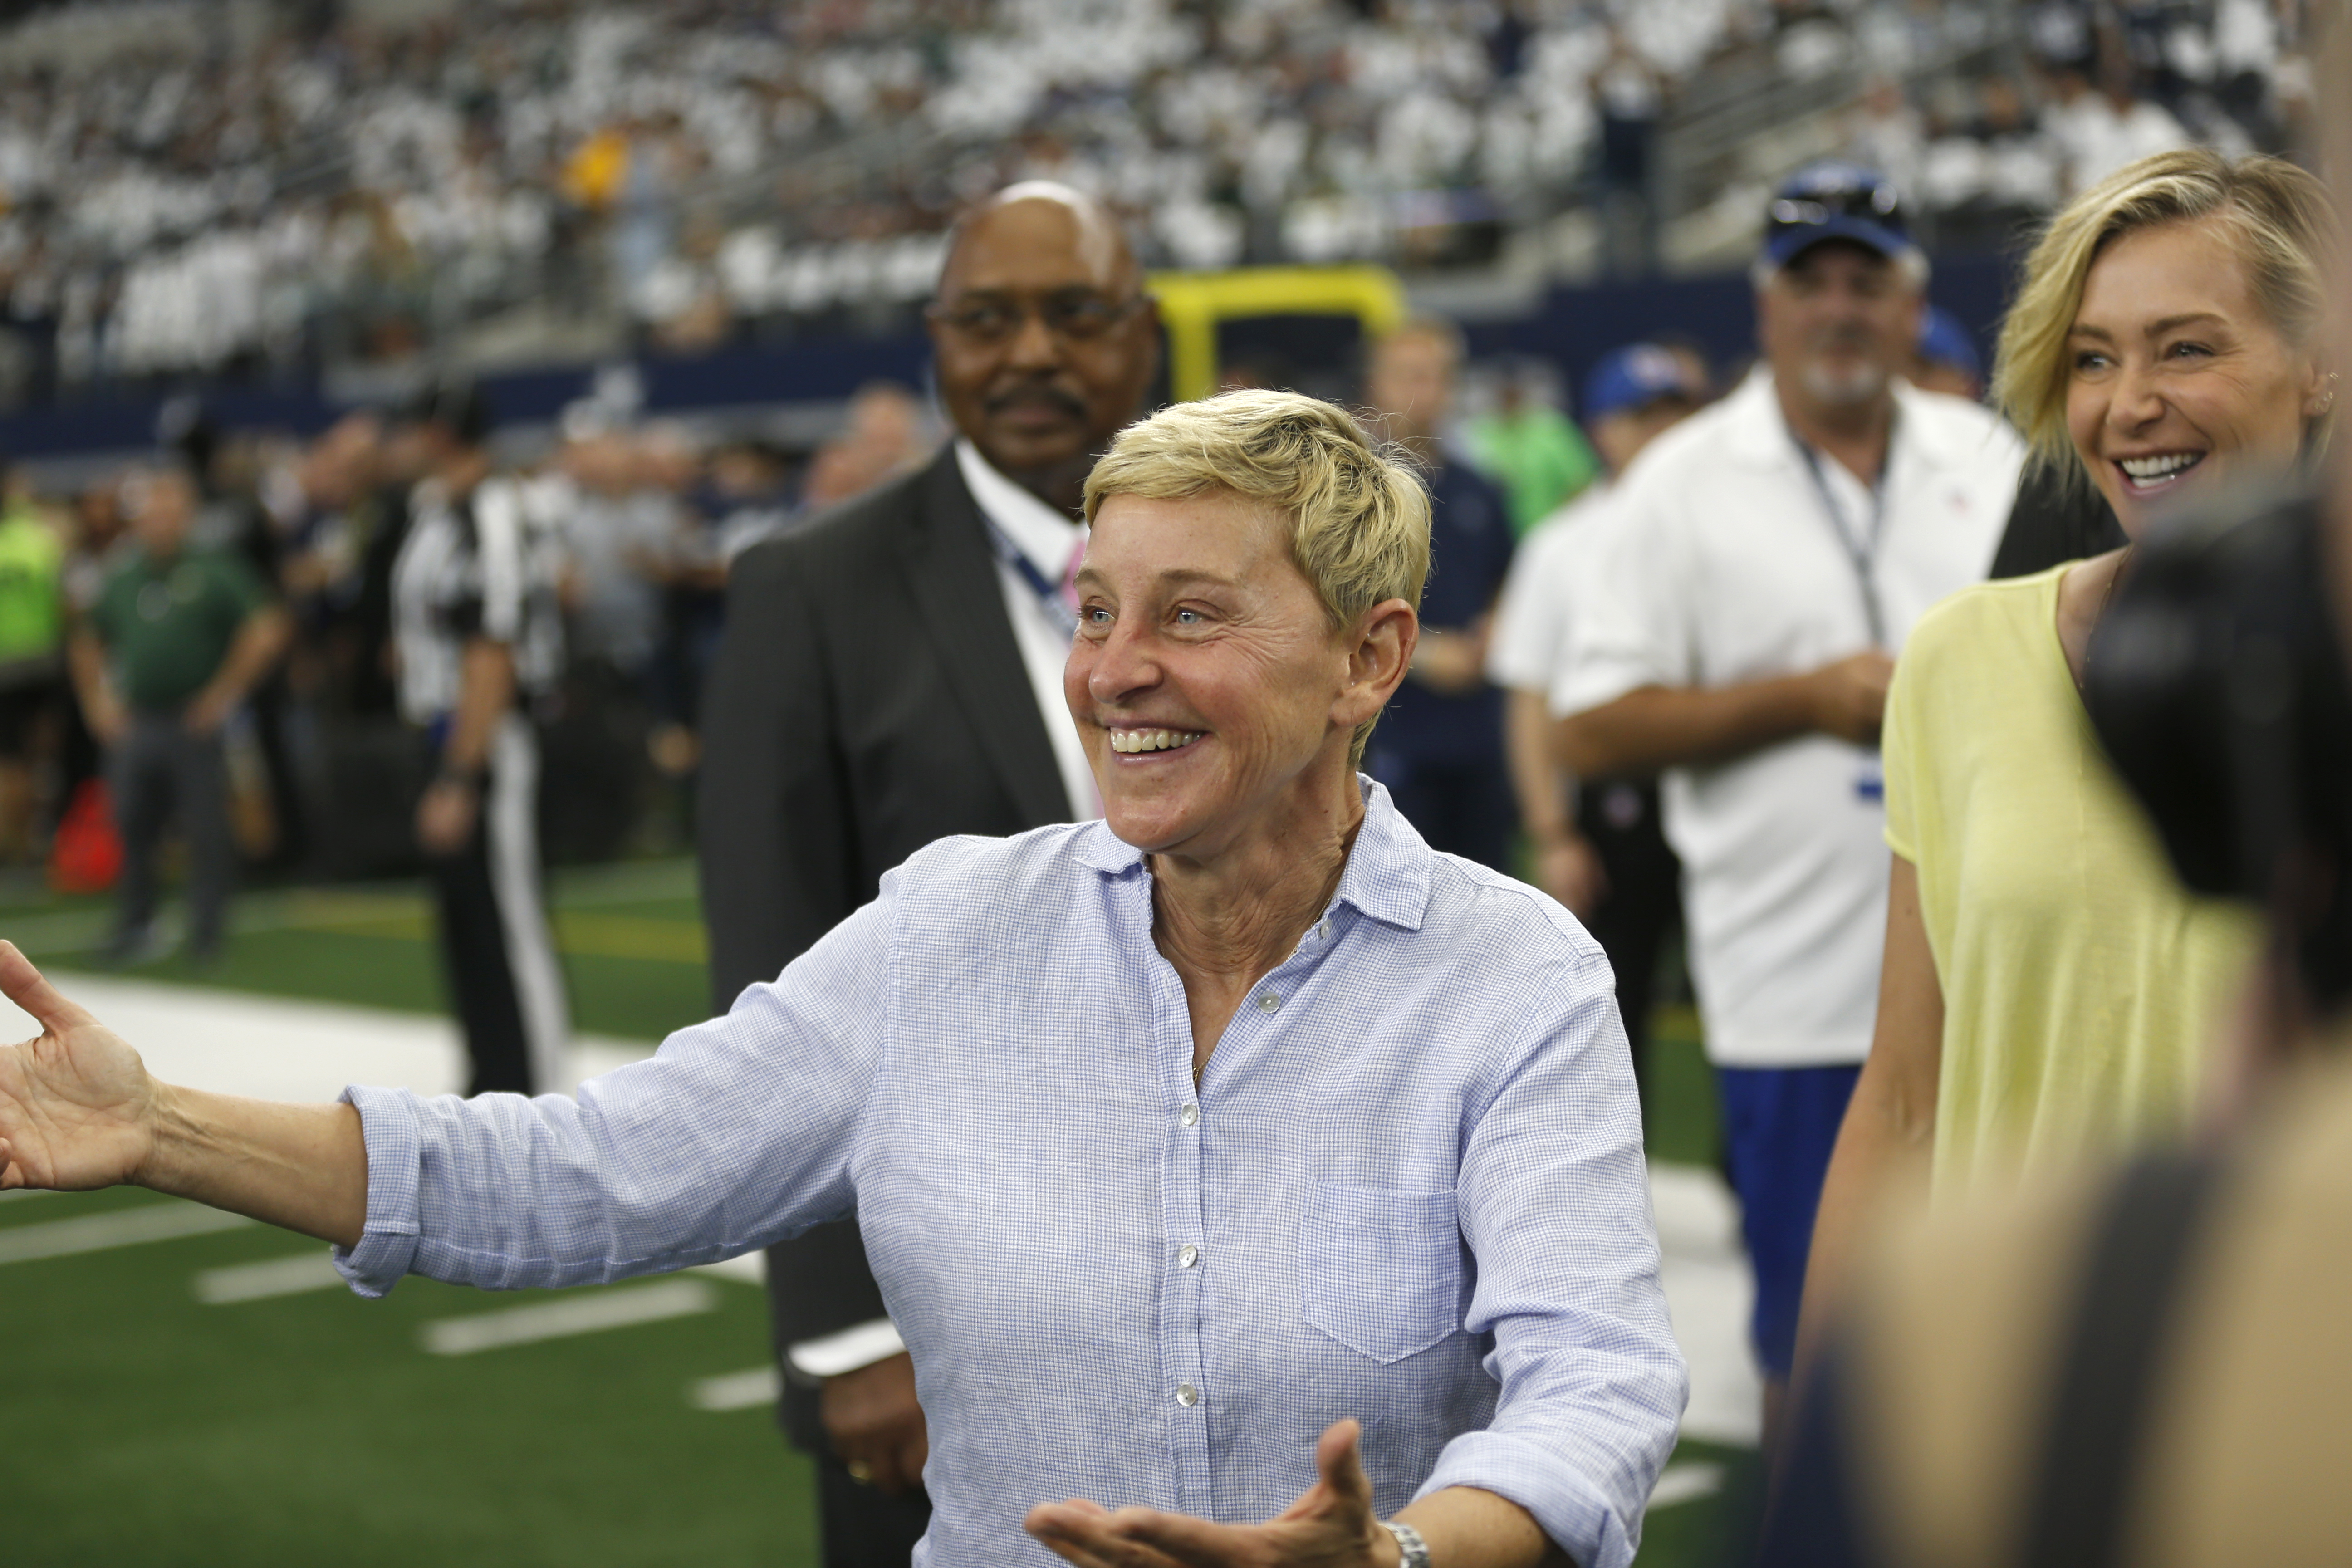 Ellen DeGeneres was on the field during the Cowboys/Packers pre-game warmups Sunday.